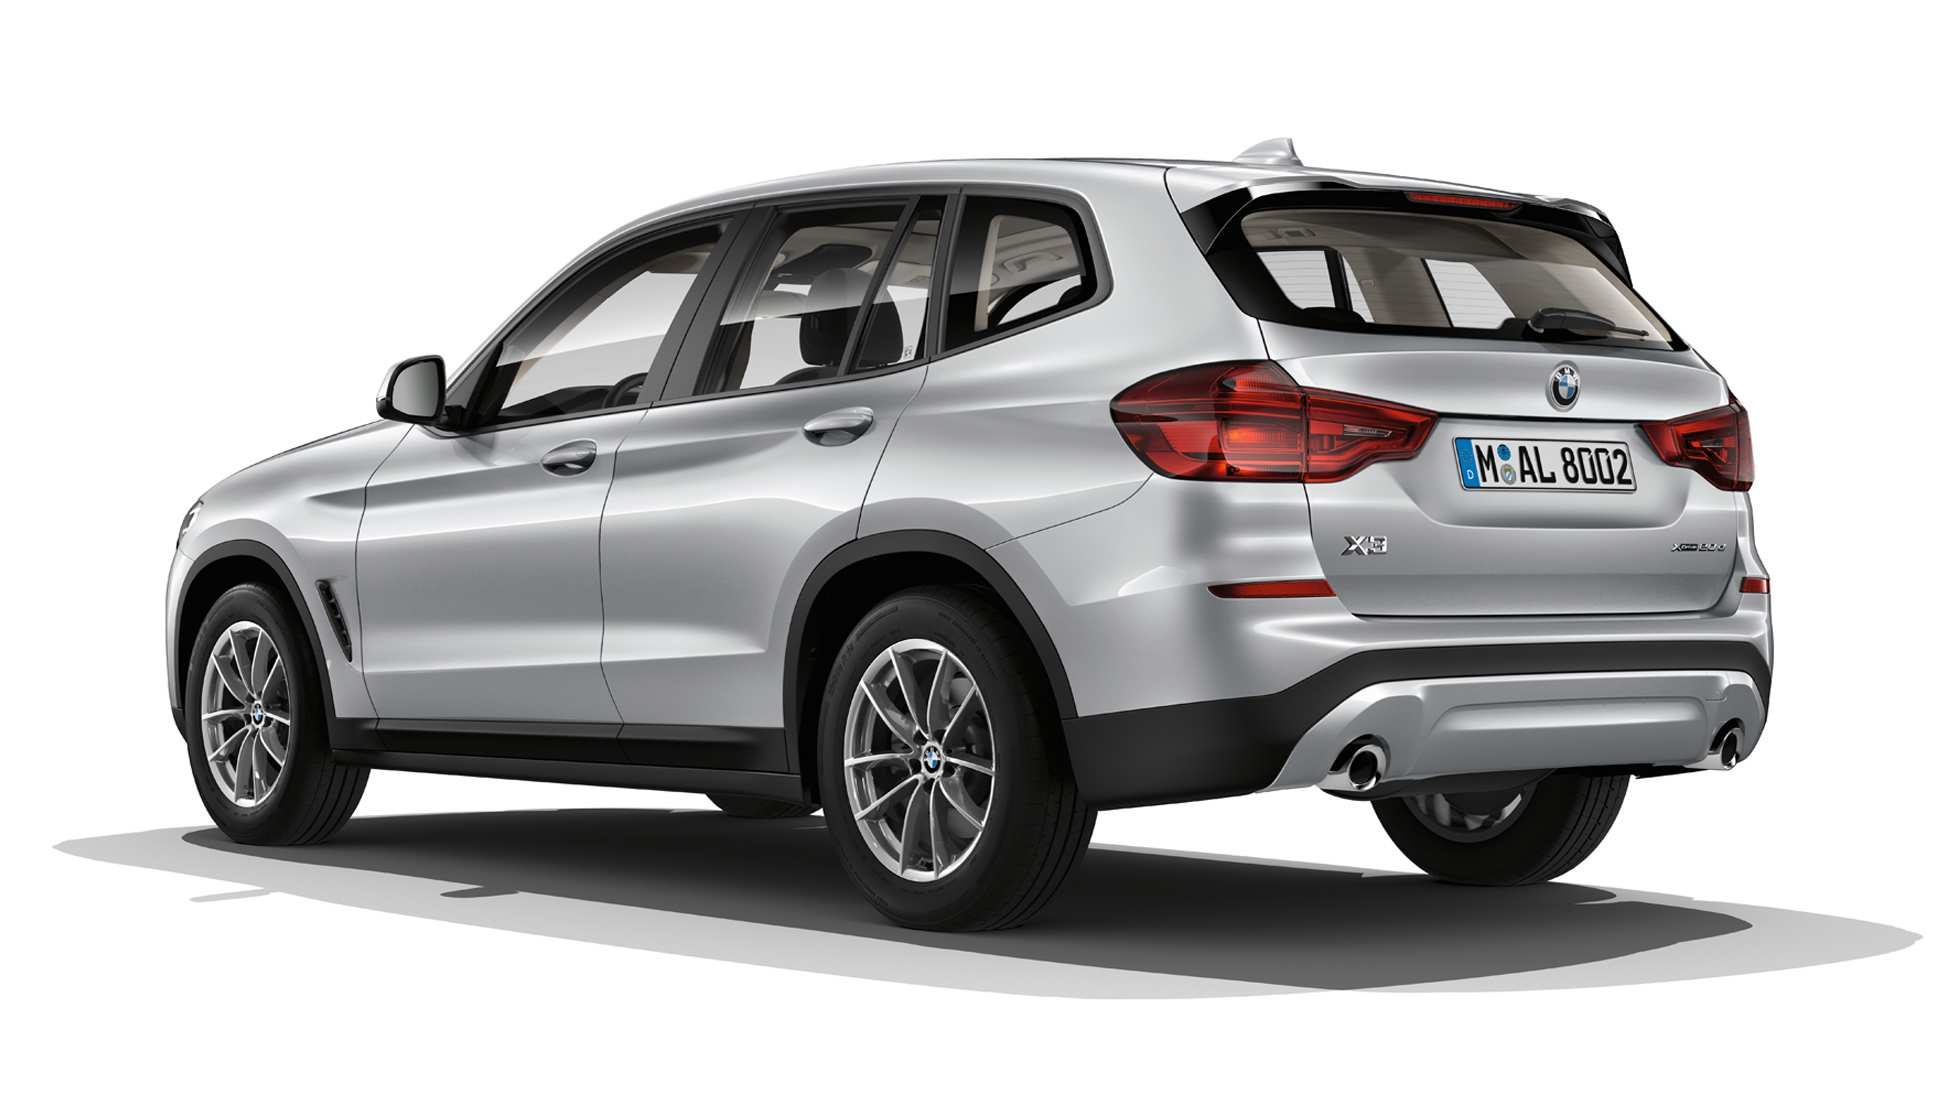 45 The Best 2019 BMW X3 Hybrid Review